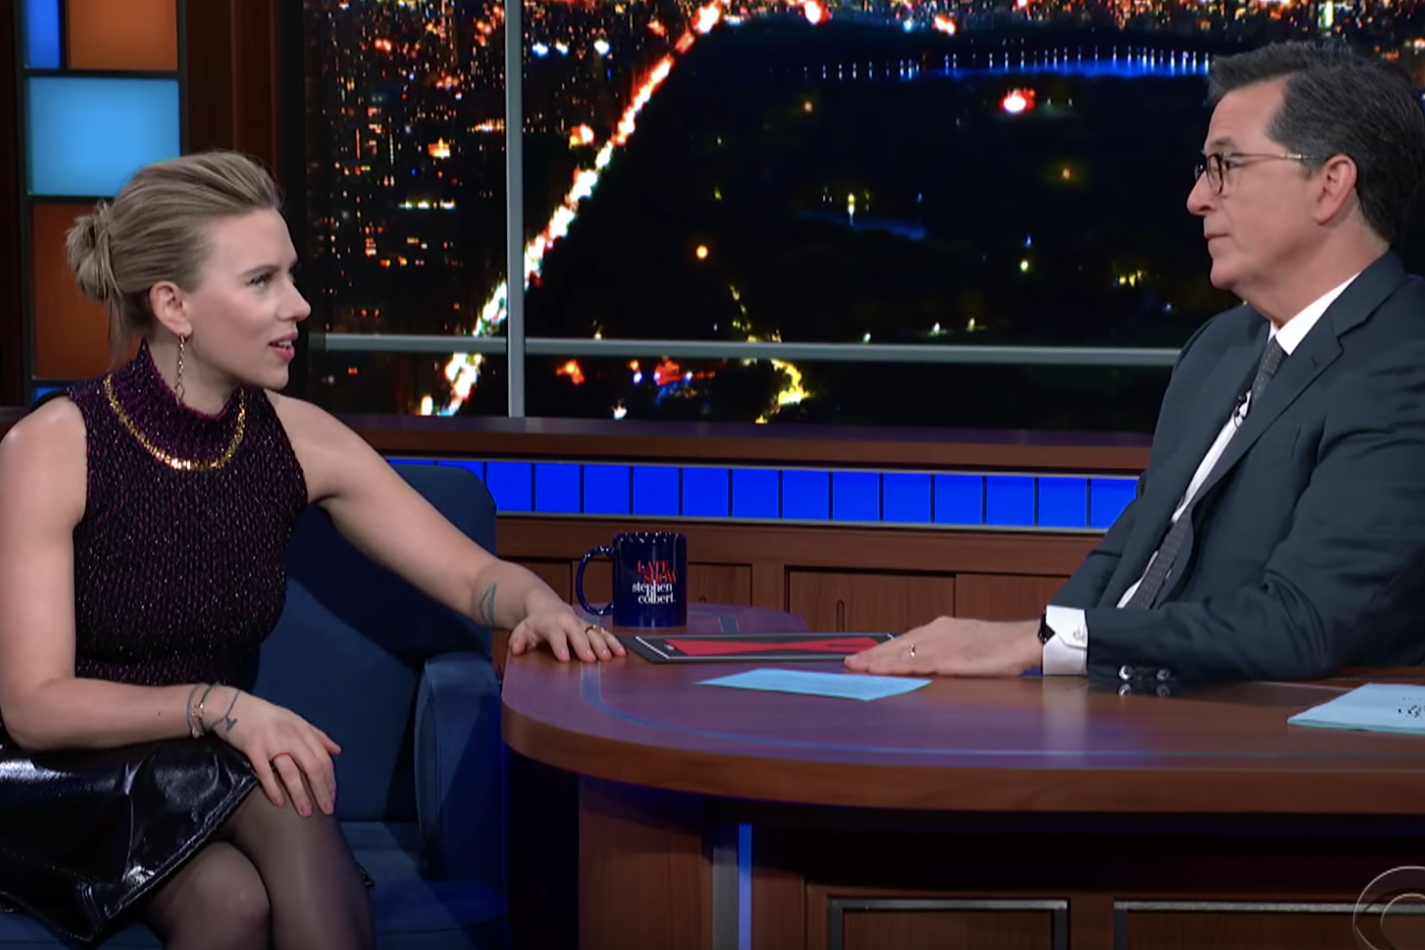 Black Widow star Scarlett Johansson says she didn't know film's trailer was coming out: 'They keep everything from me'